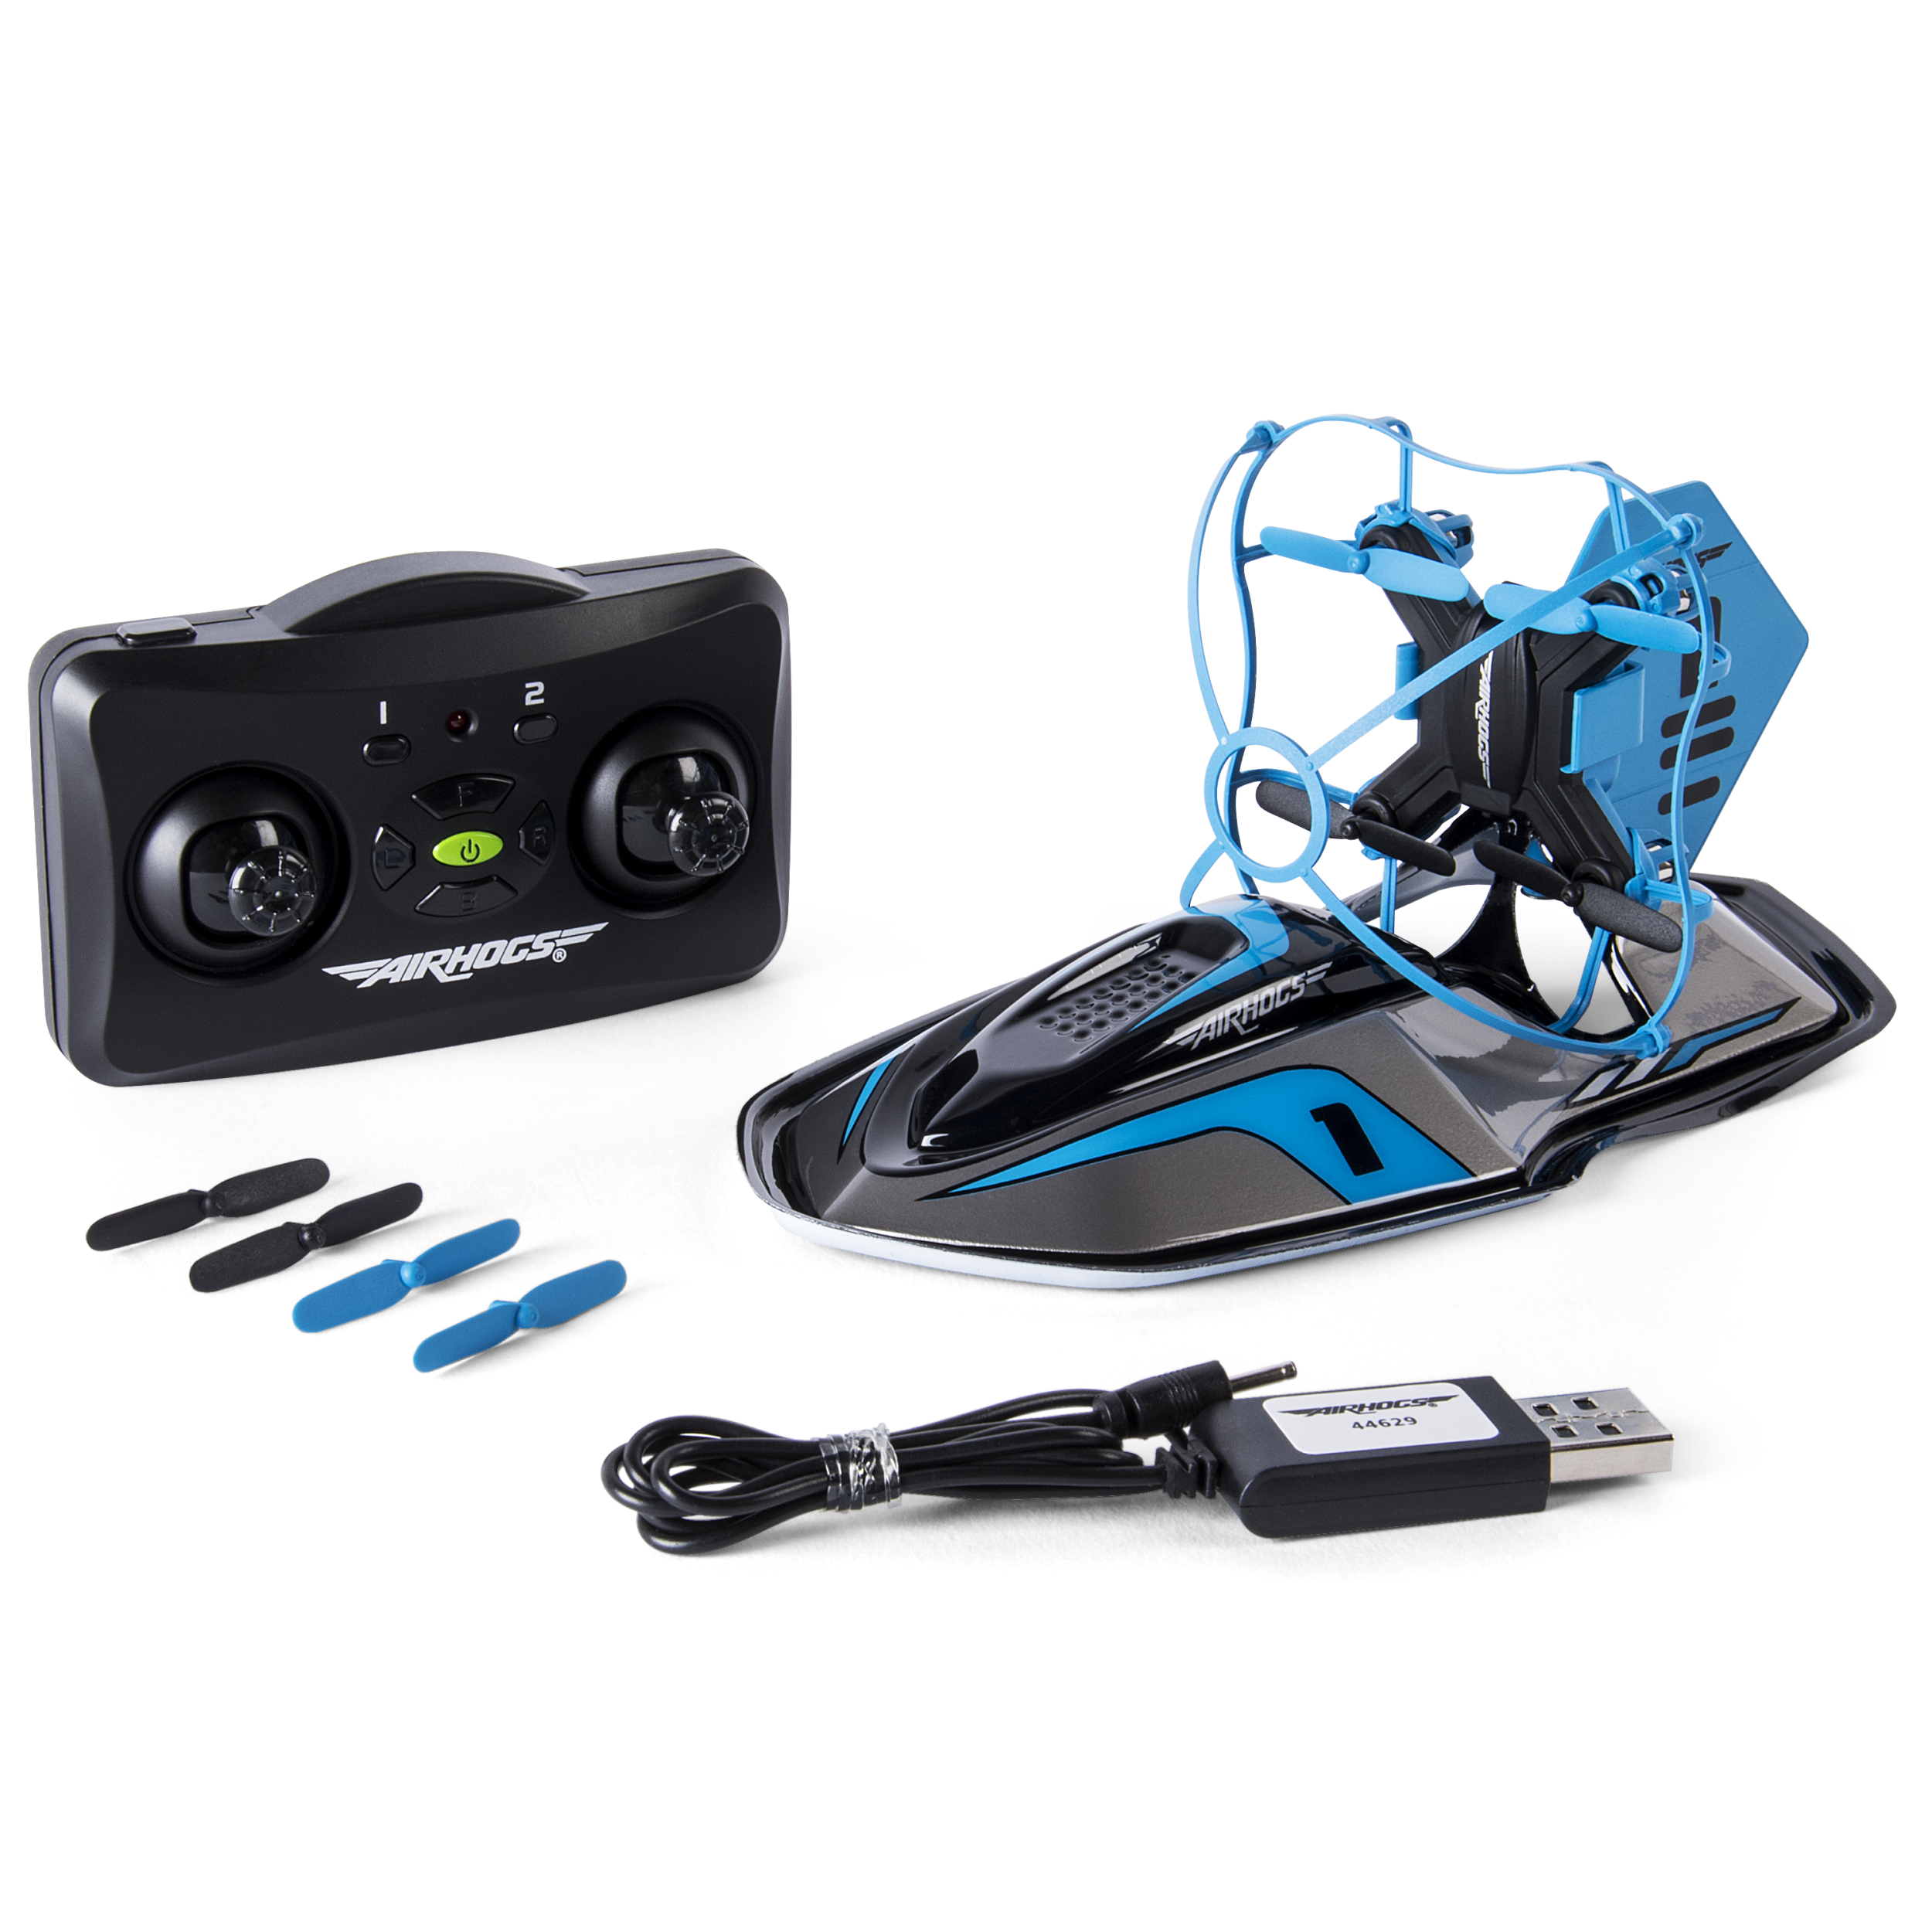 Image of Air Hogs 2-in-1 Hyper Drift Drone for High Speed Racing and Flying, Blue